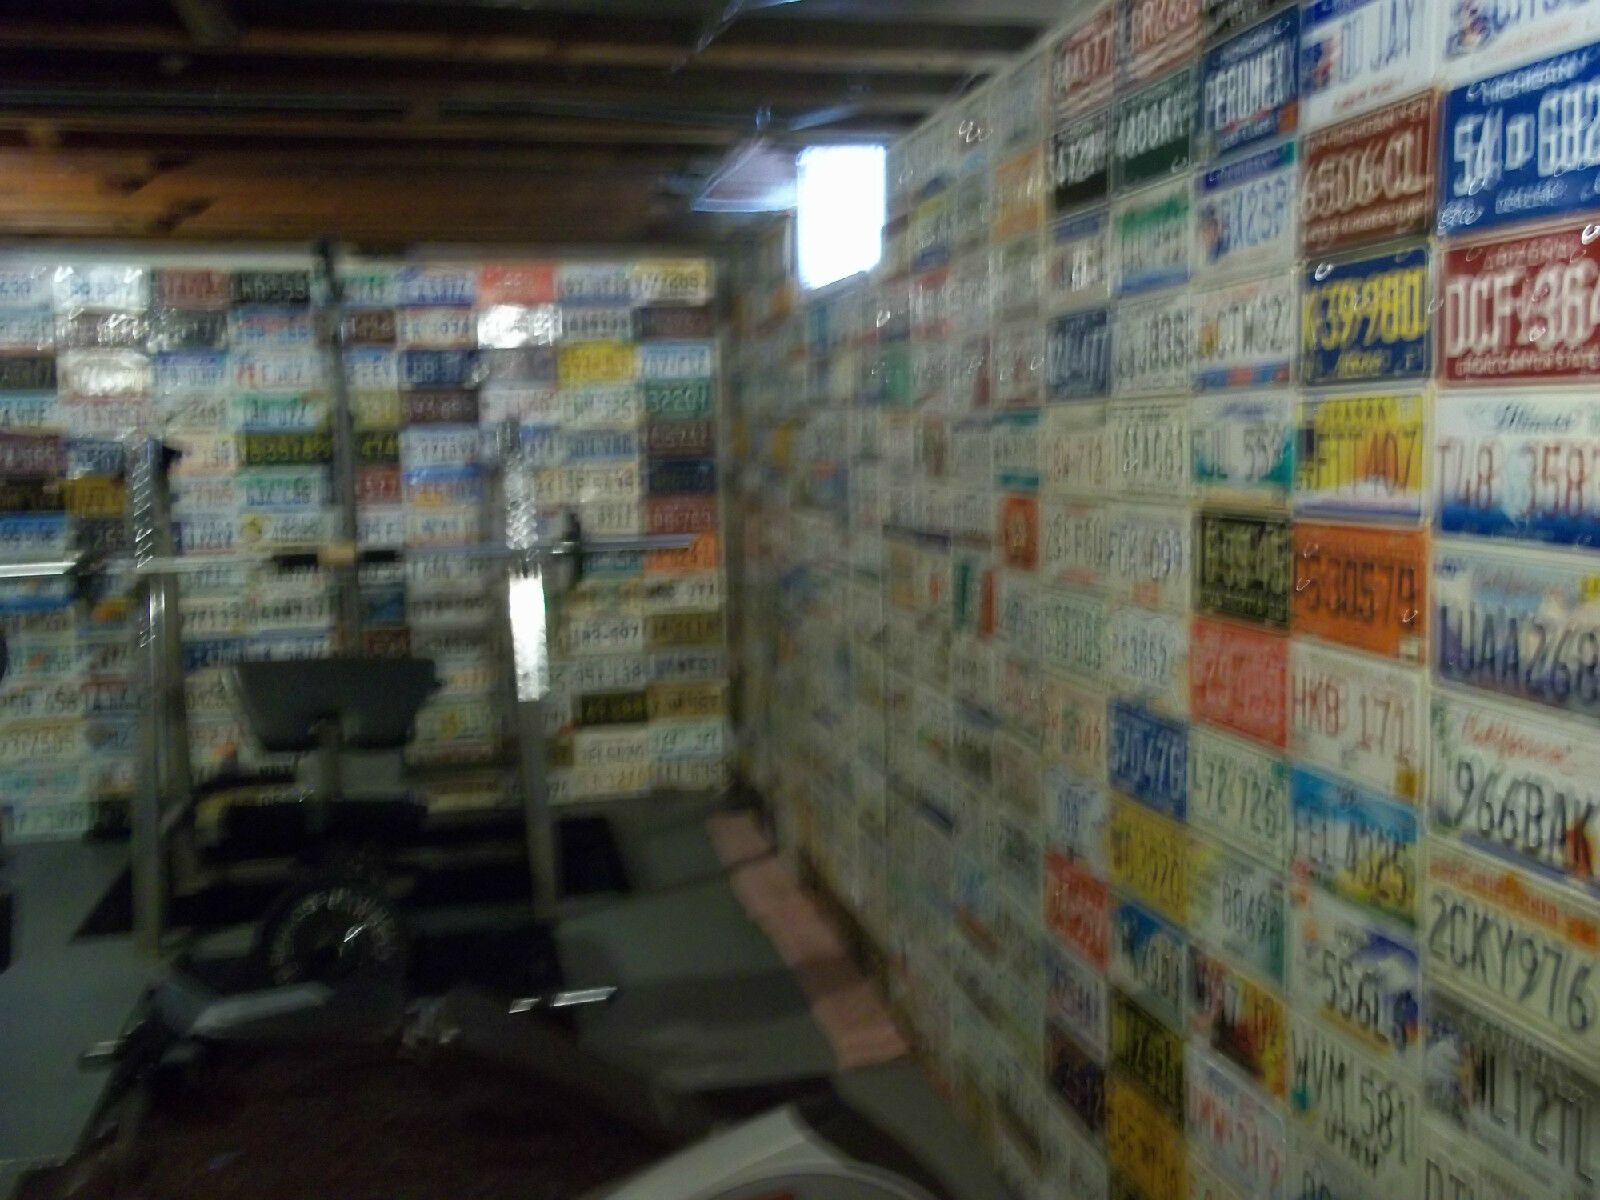 A Set of 1,280 License Plates. USA, Mexico,Central South America, and Europe